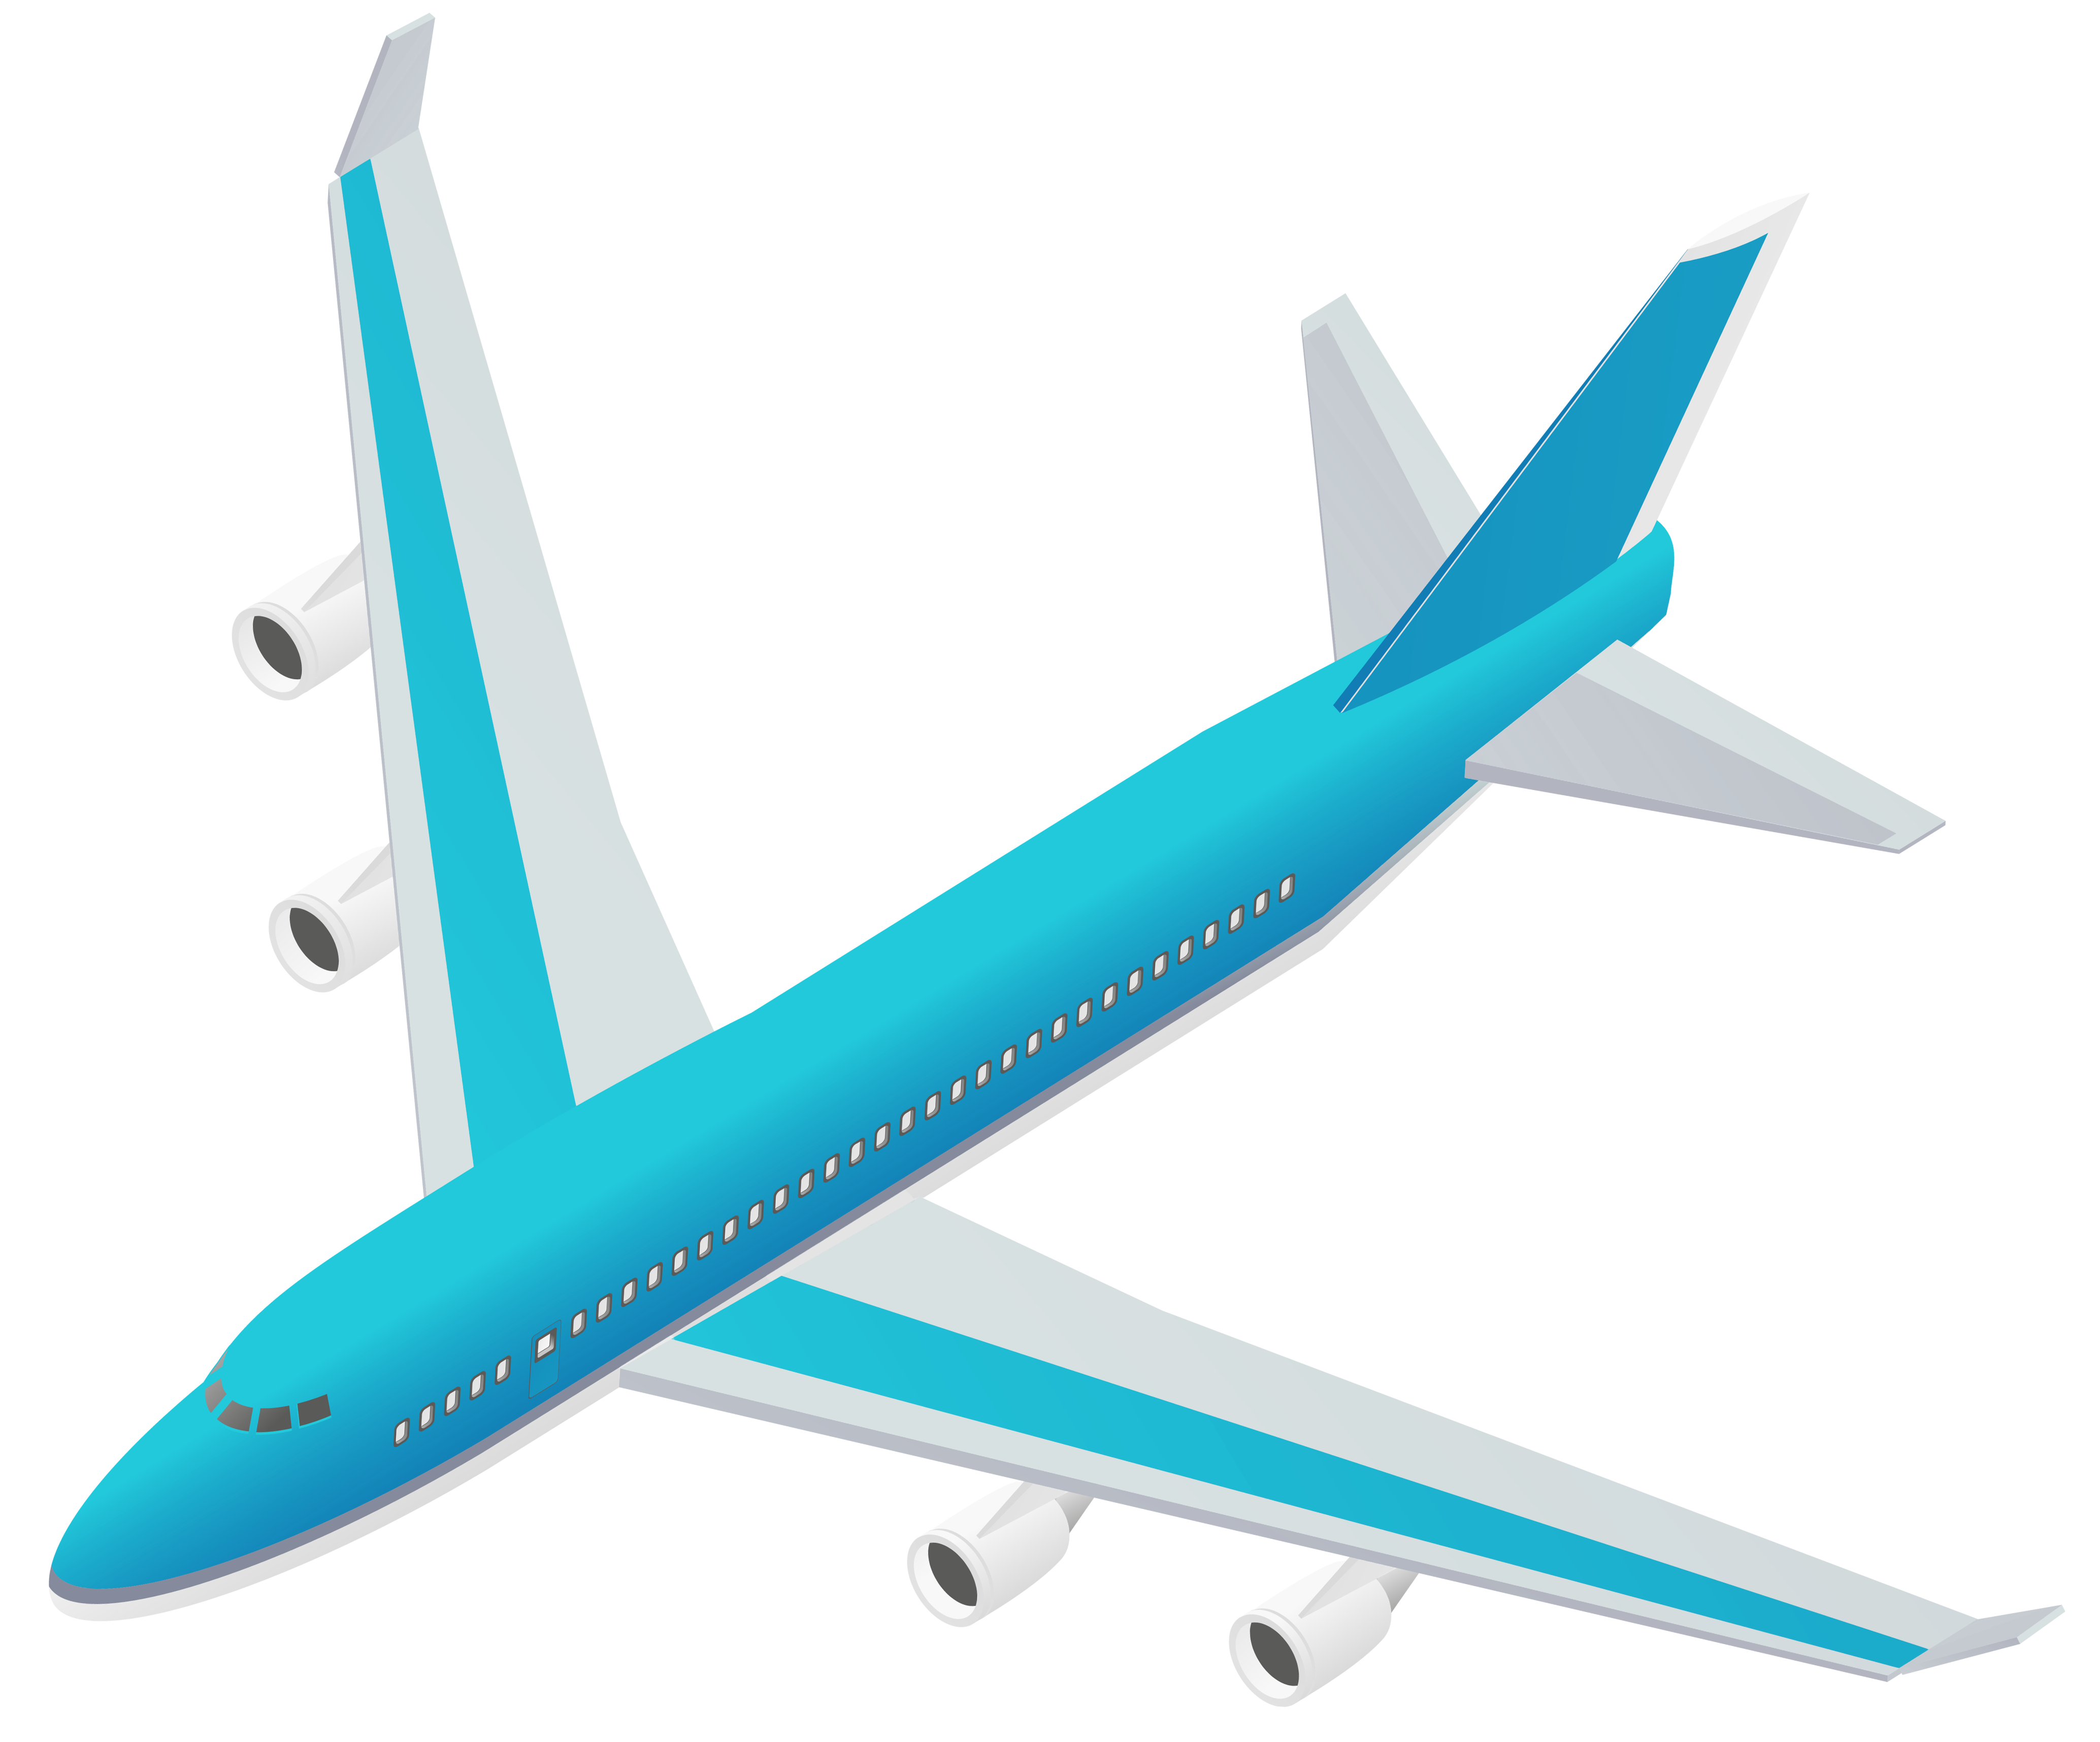 Blue transparent png vector. Clipart airplane valentine